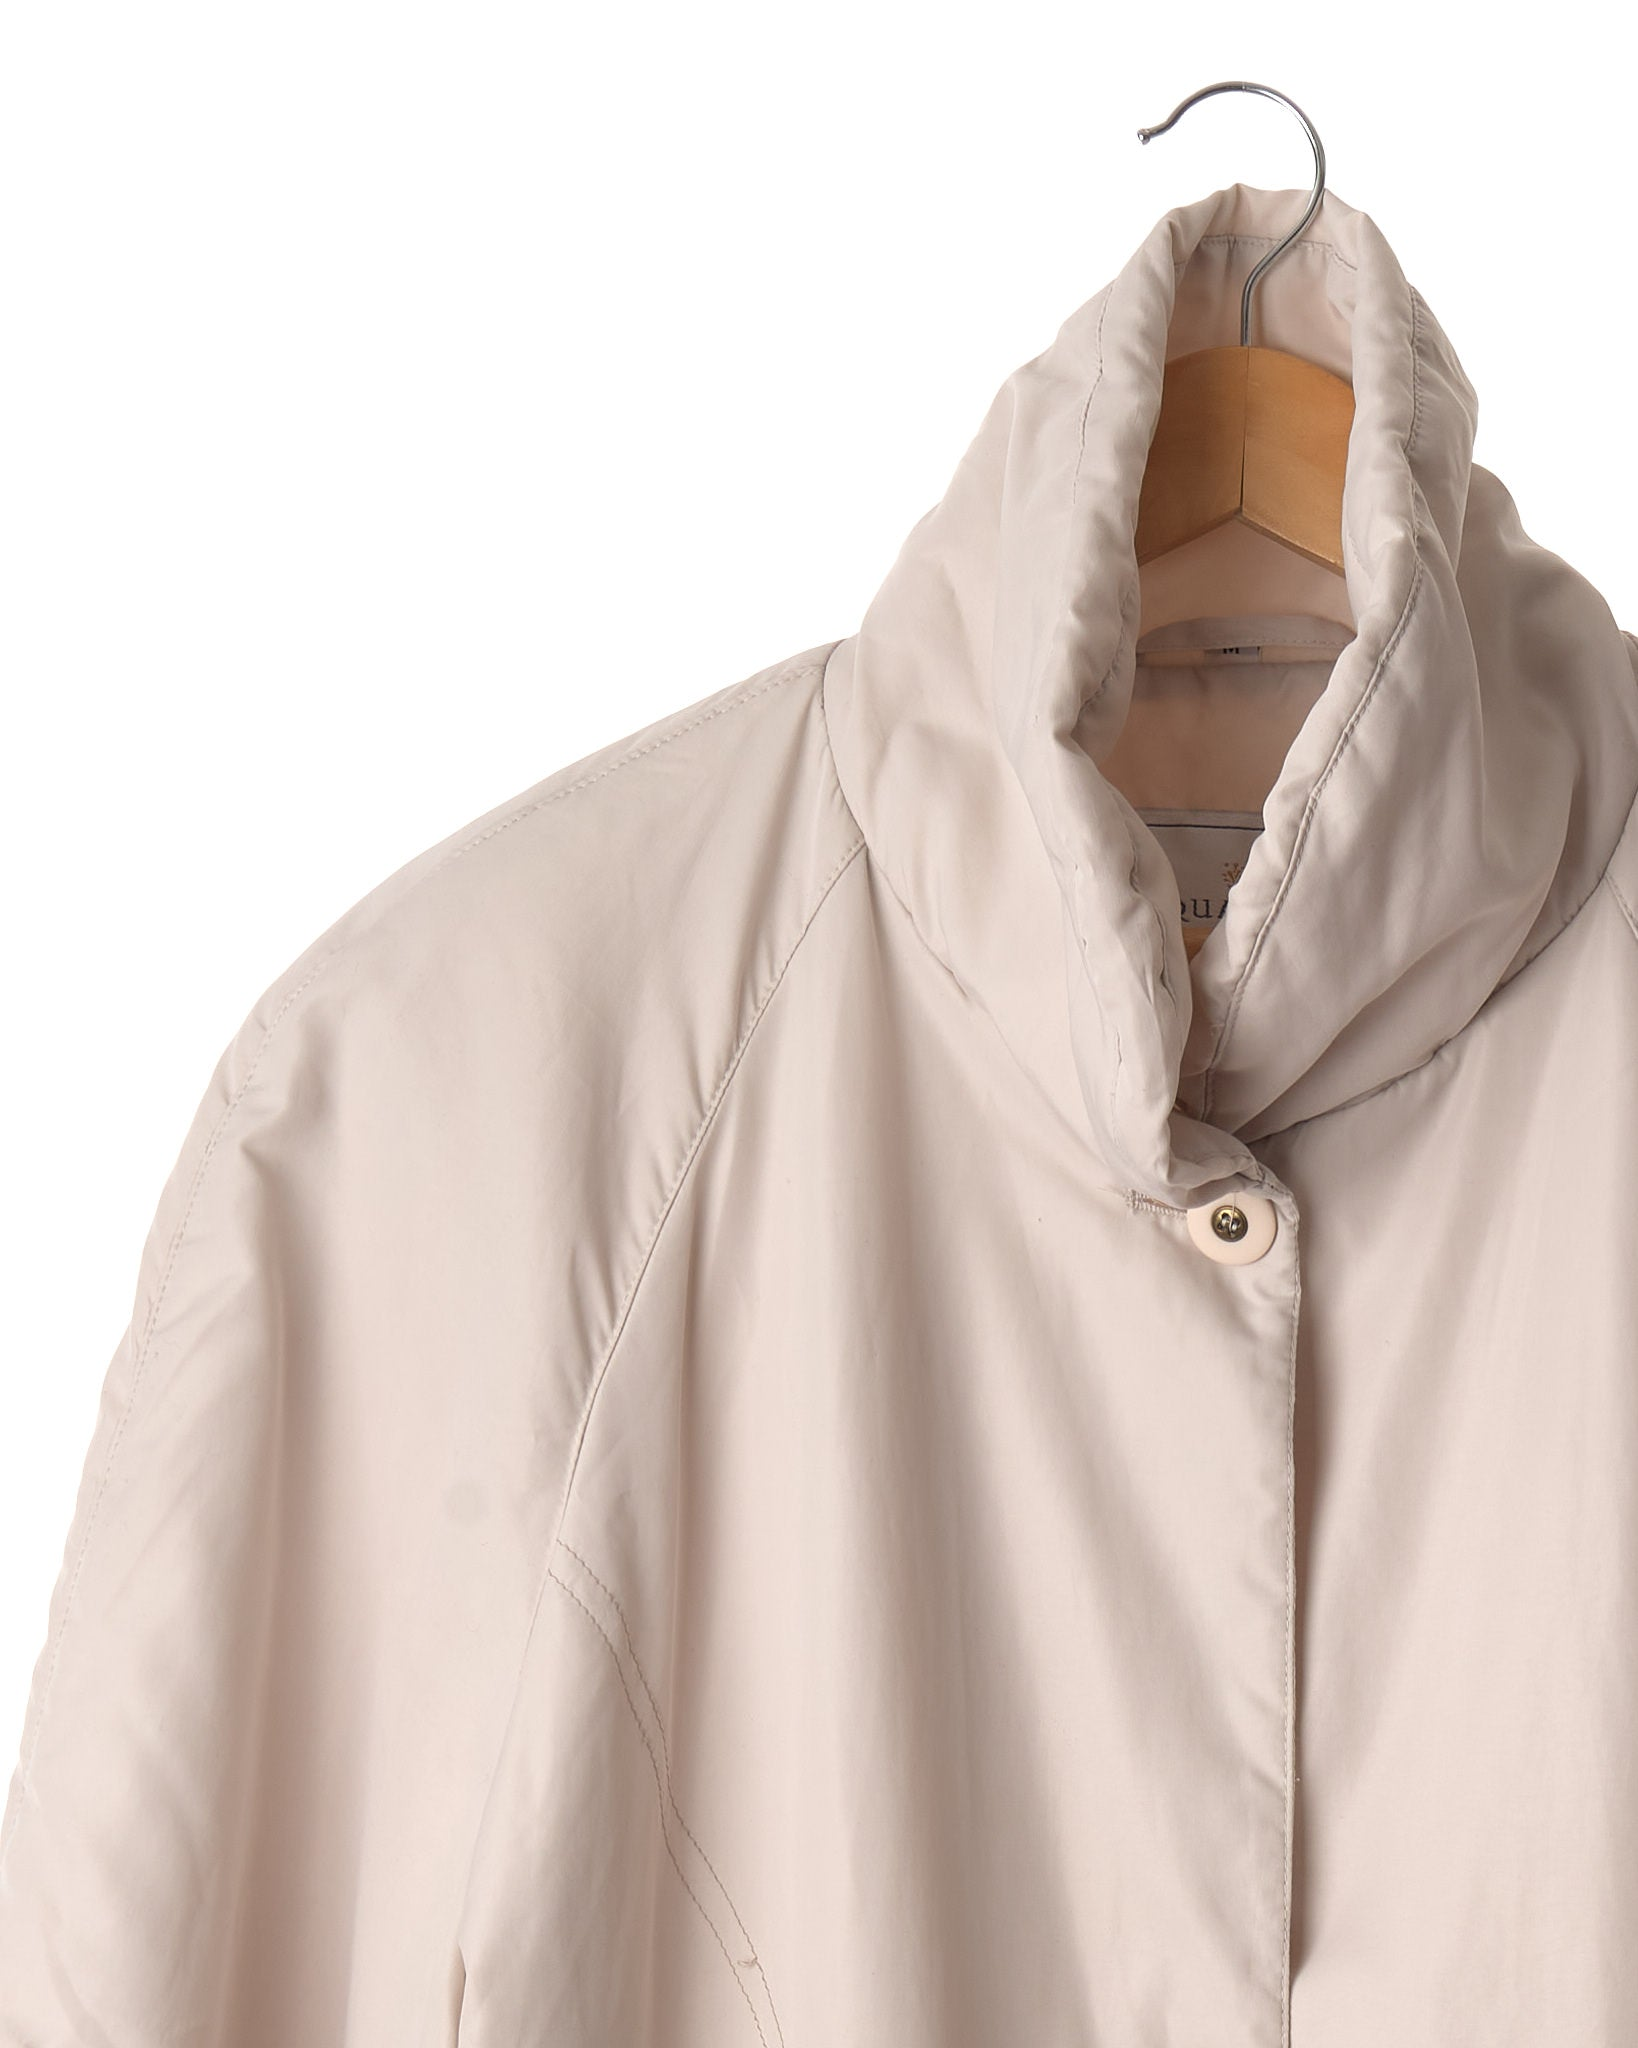 Cream Puff Vintage Car Coat